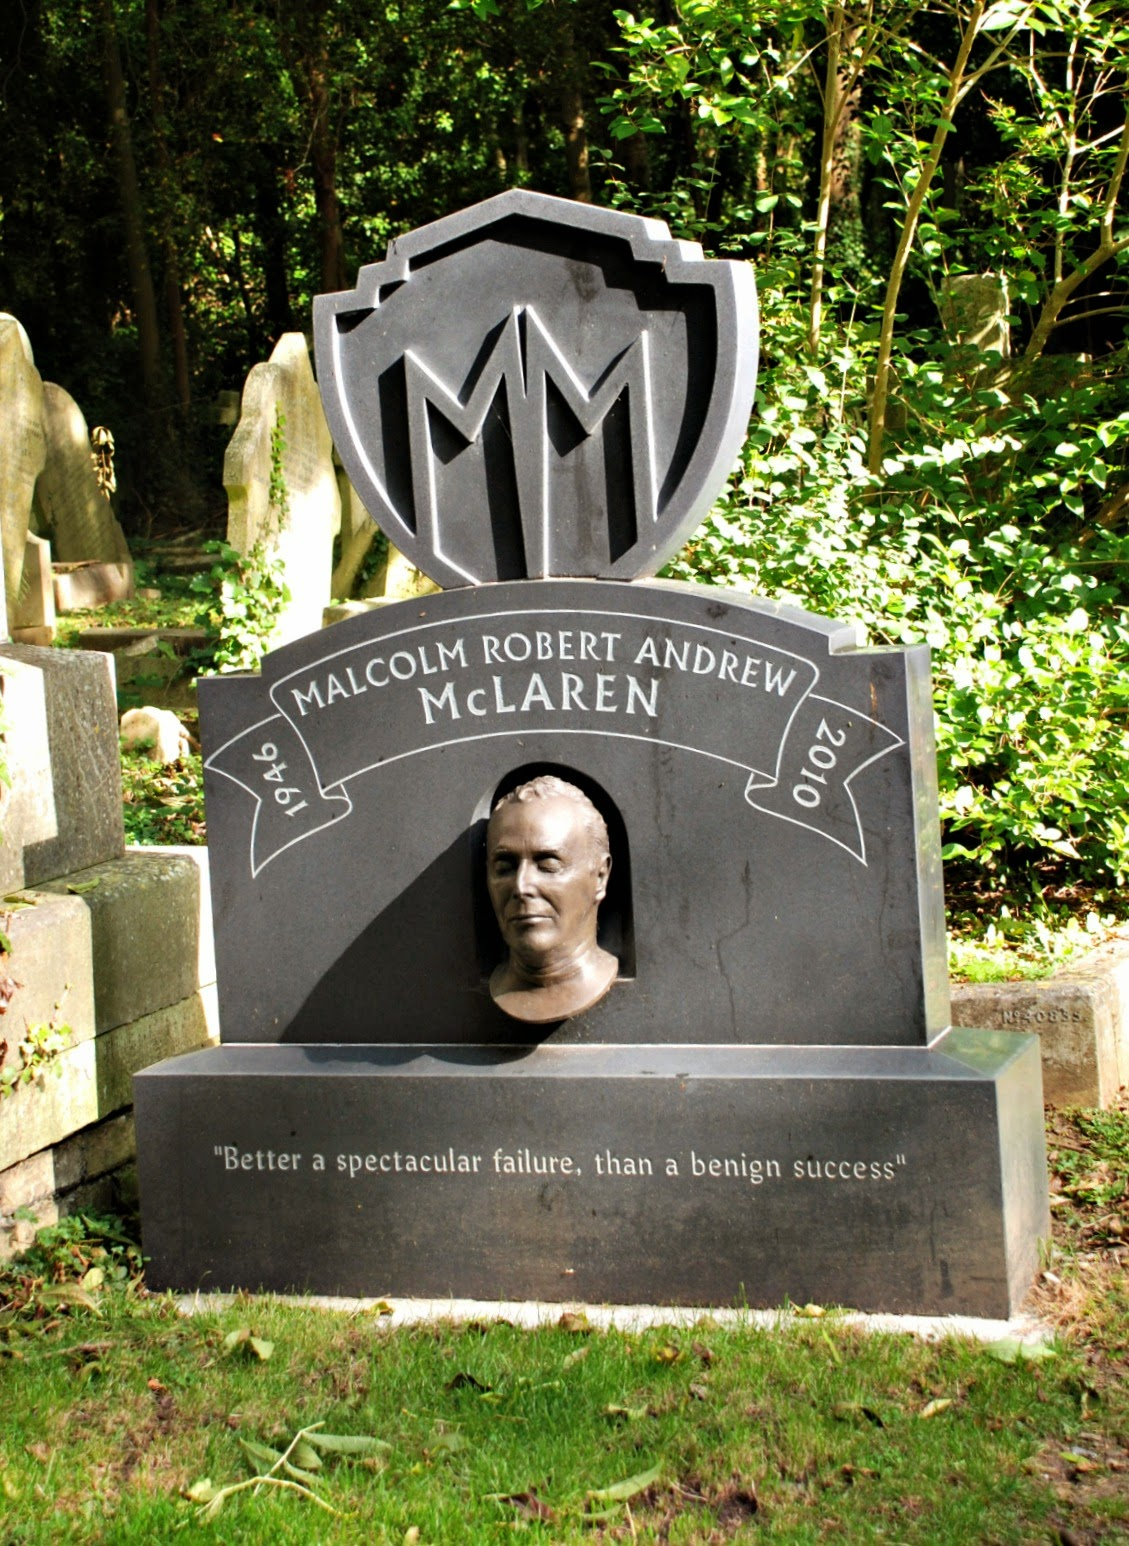 Malcolm McLaren's memorial, Highgate Cemetery, London